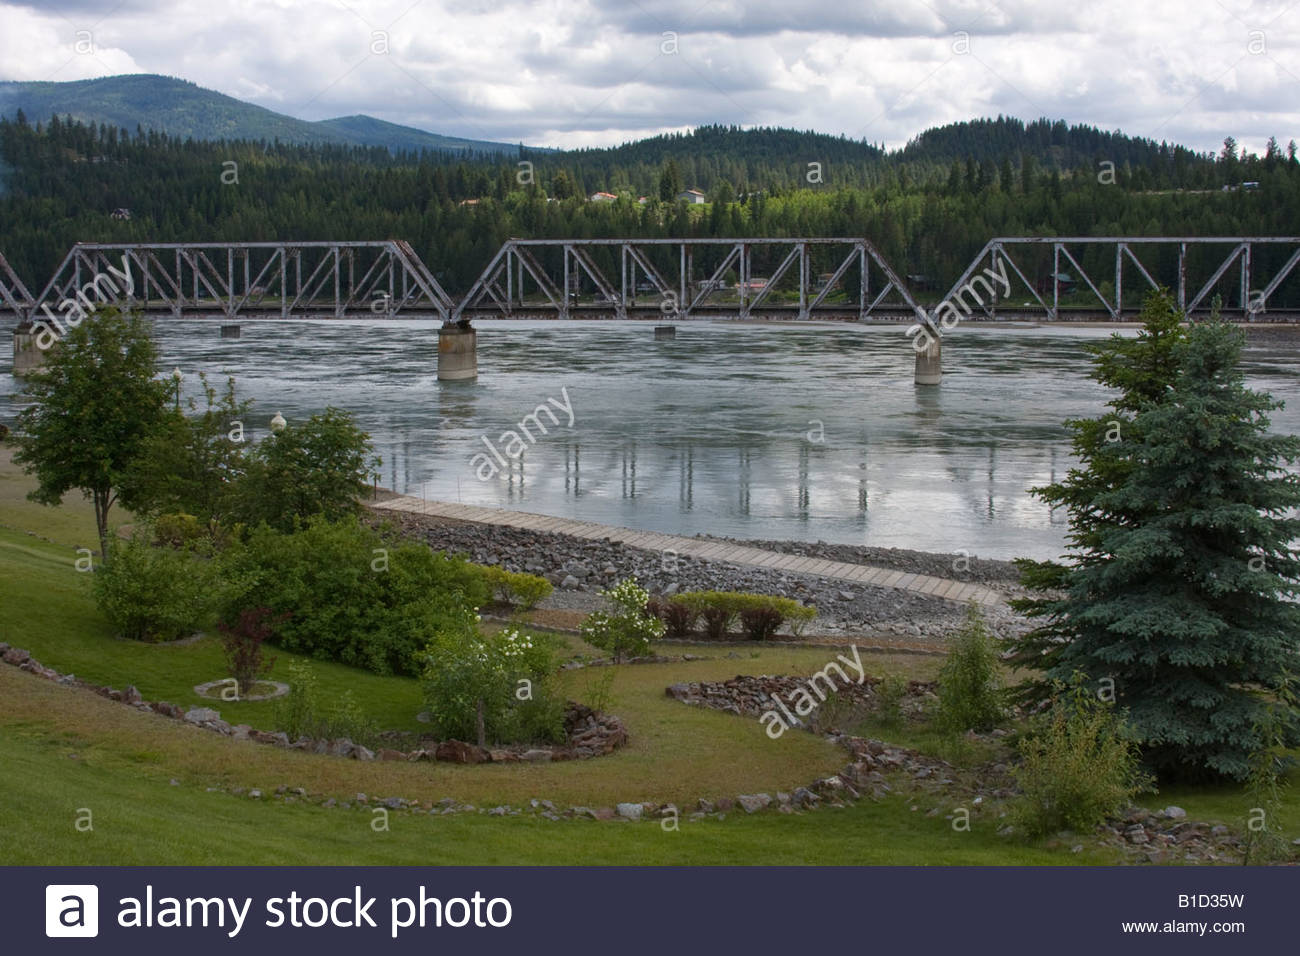 Railroad bridge over the Pend Oreille River in North Idaho with a grassy path in the foreground. - Stock Image